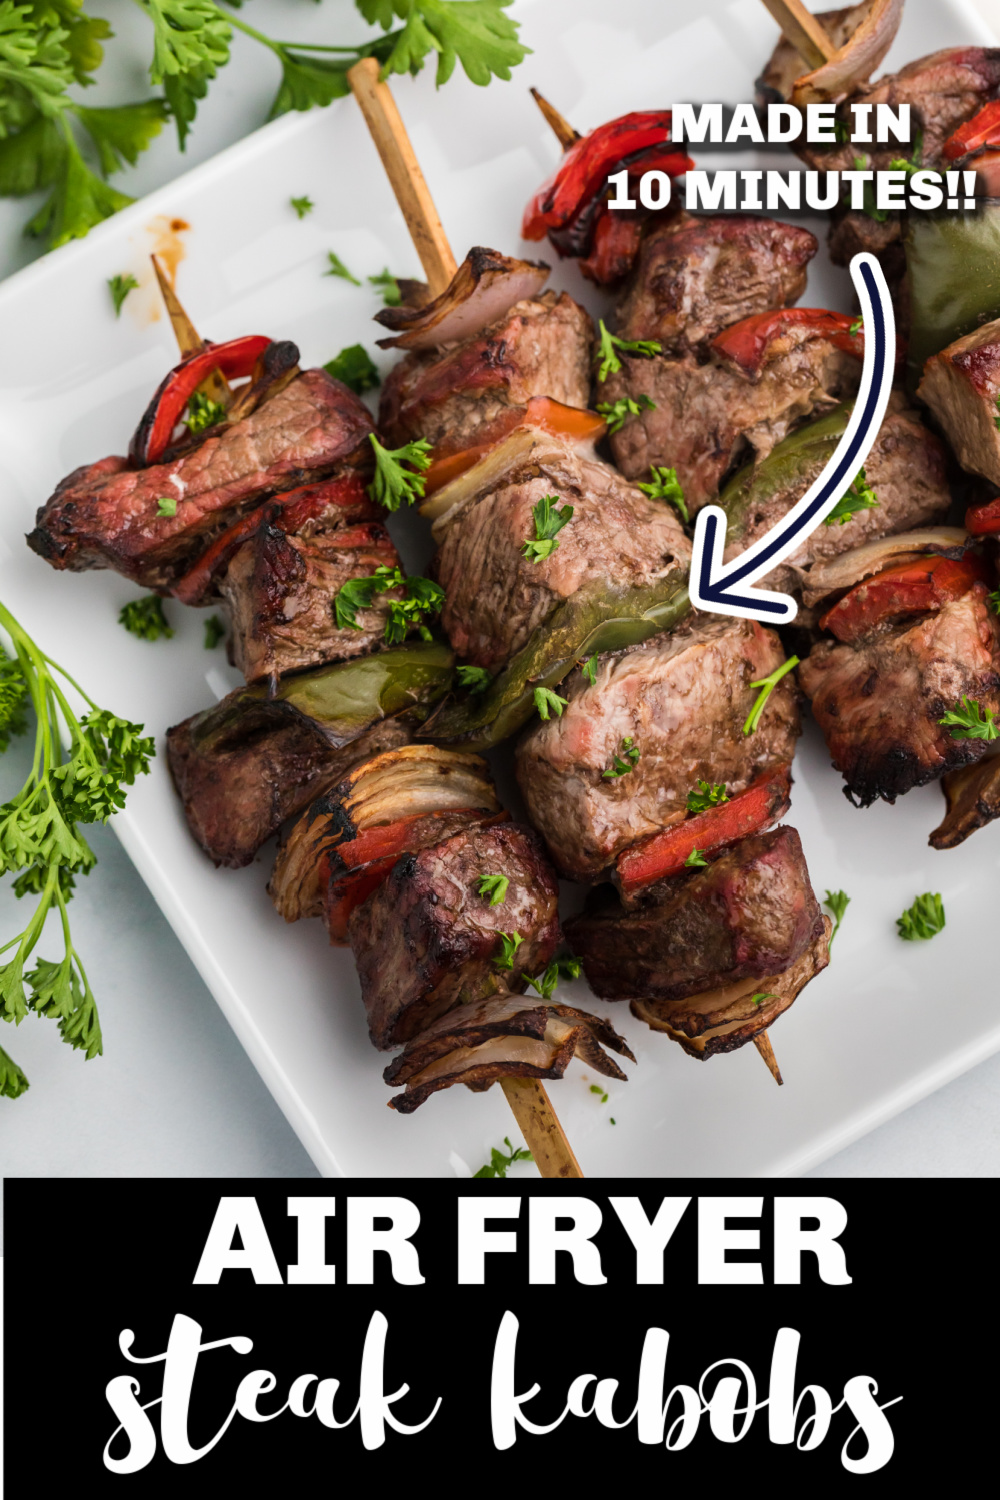 Air Fryer Steak Kabobs are the perfect delicious dinner! Made with steak, onion, and bell peppers. You'll love these healthy kabobs, made in just 10 minutes!